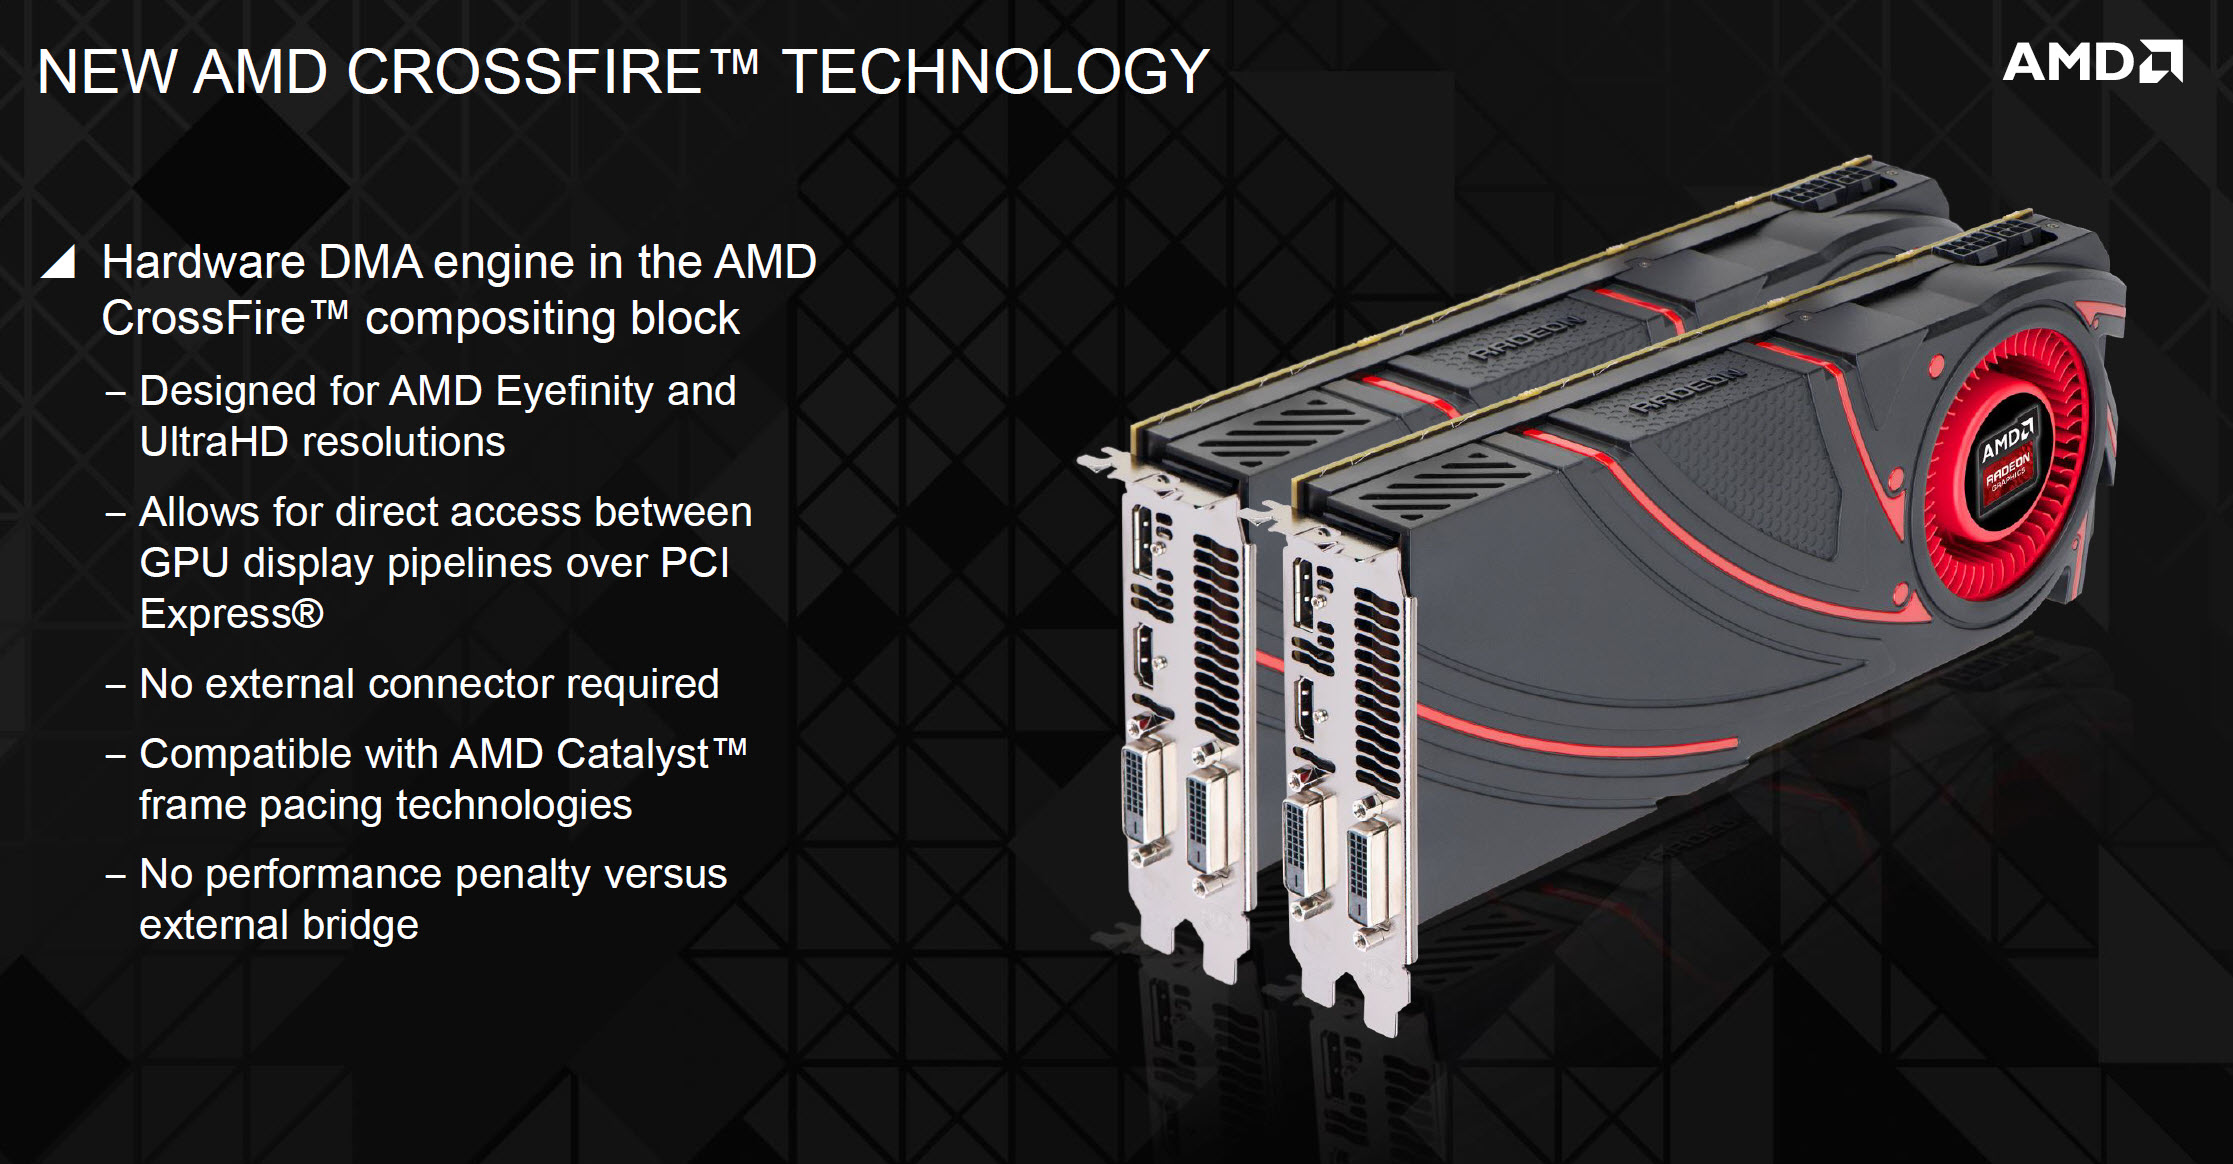 AMD Crossfire XDMA Engine